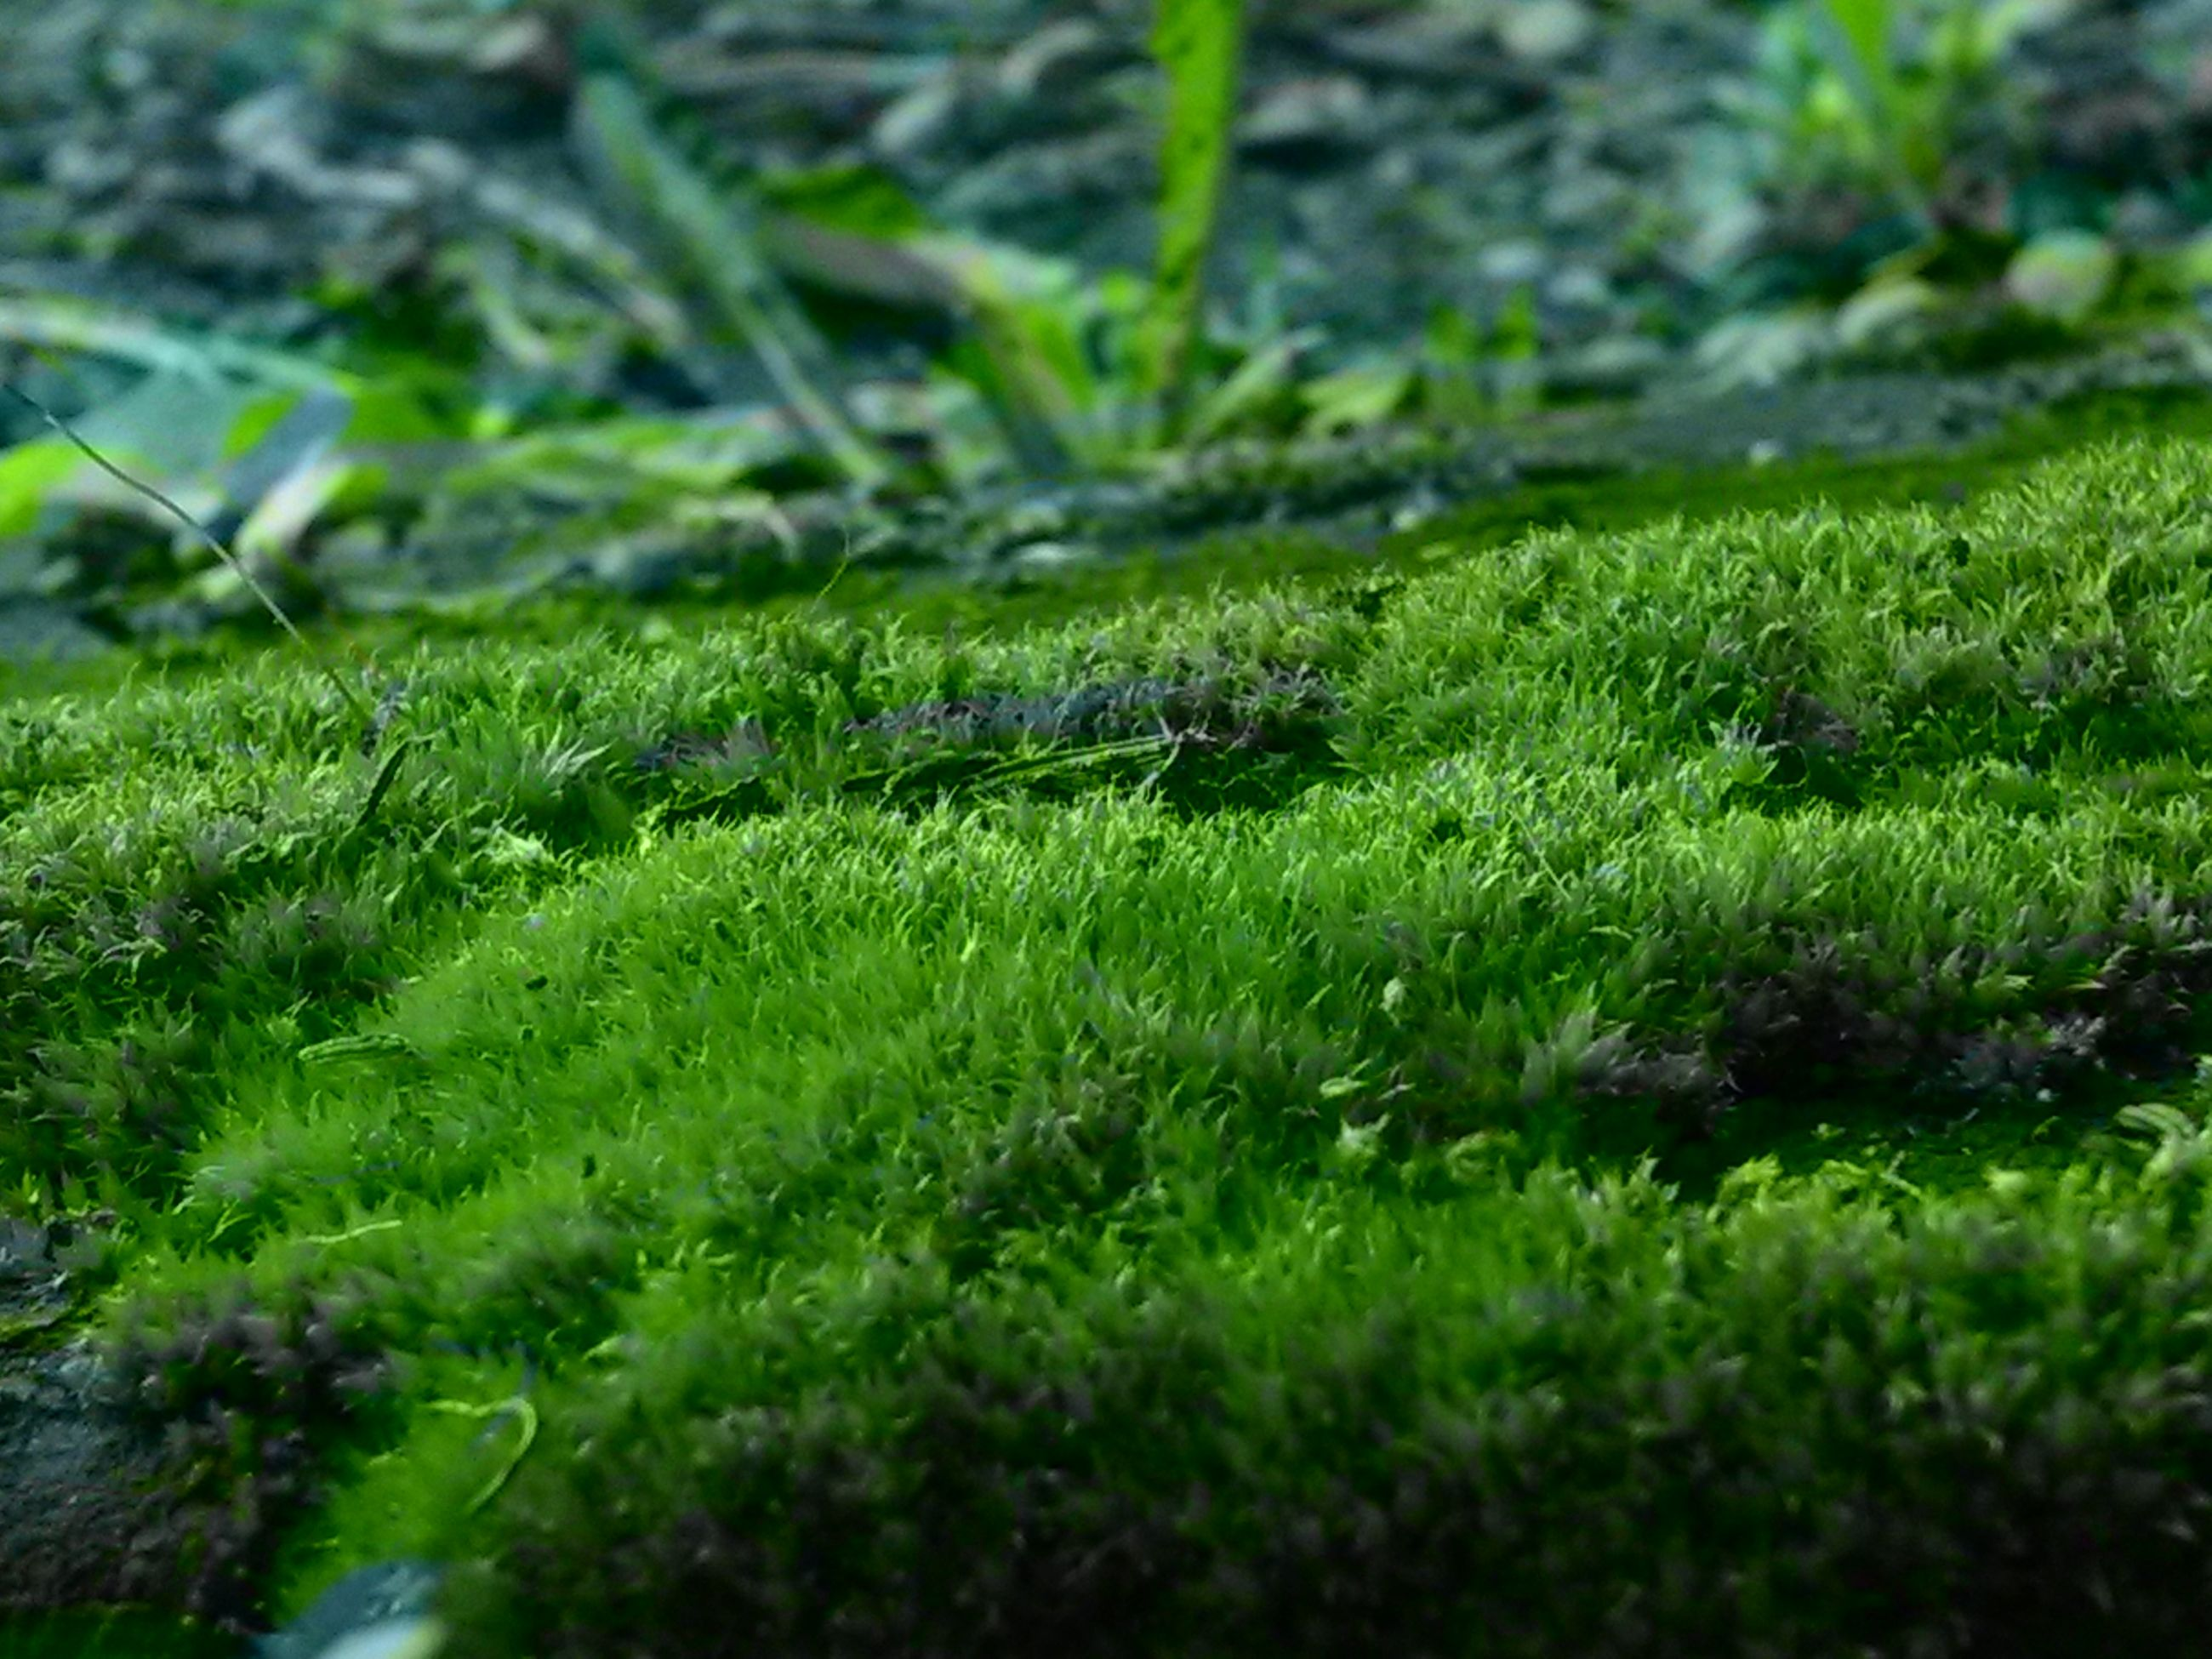 grass, green color, growth, selective focus, field, grassy, nature, plant, beauty in nature, tranquility, close-up, focus on foreground, green, day, outdoors, surface level, blade of grass, no people, moss, lush foliage